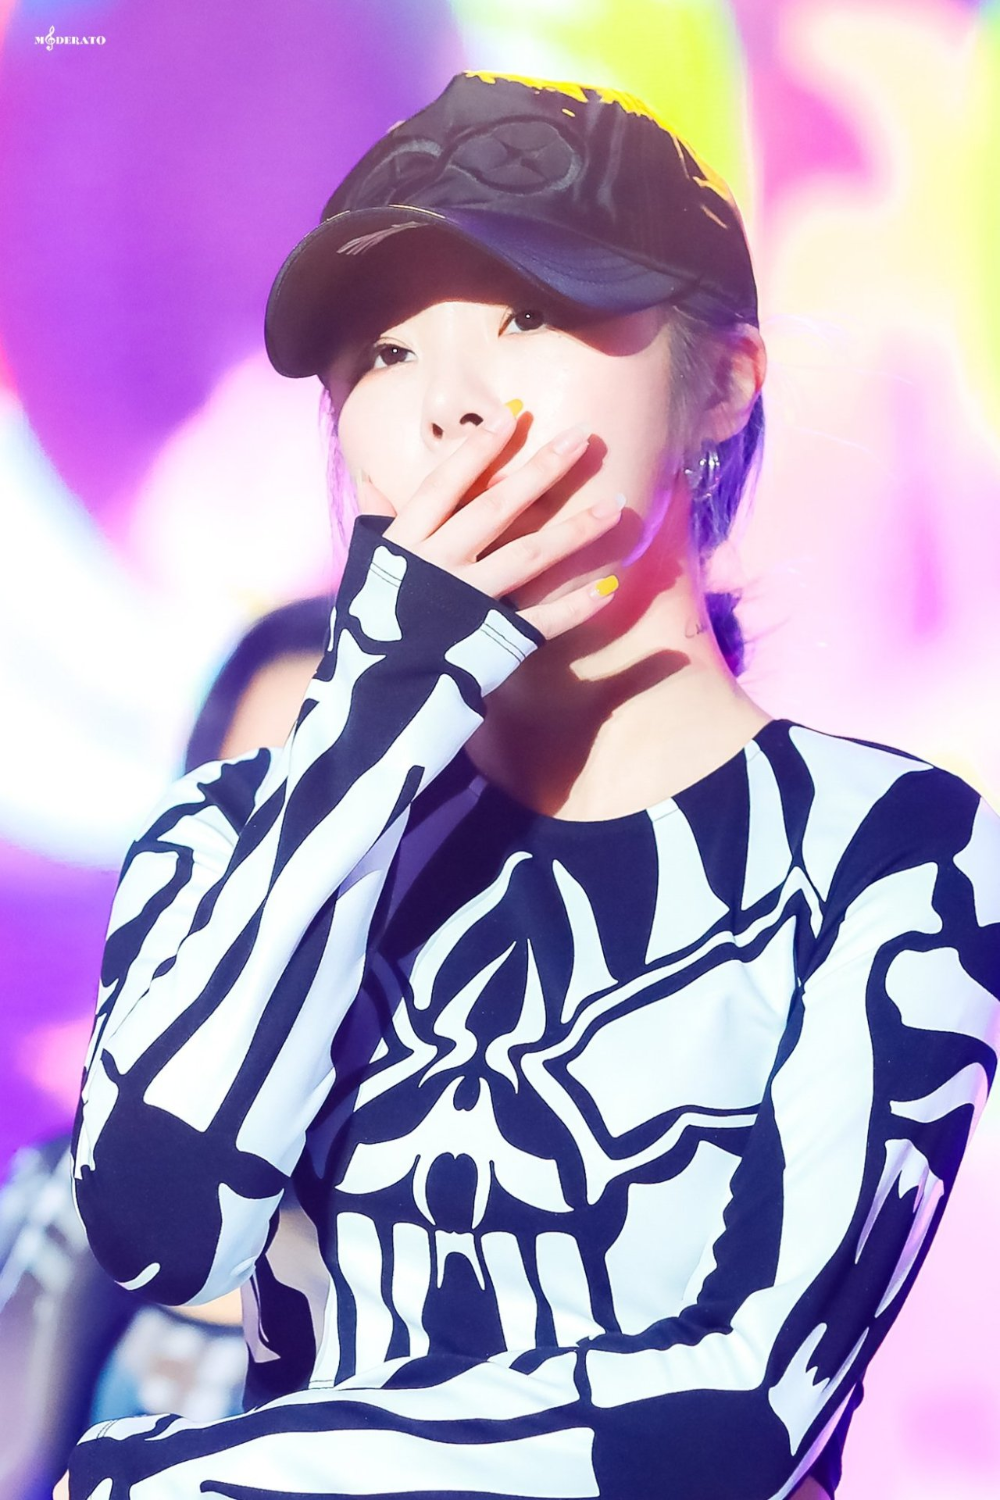 Pin By Sarah S On Artsy Wheein Mamamoo Mamamoo Kpop Girls